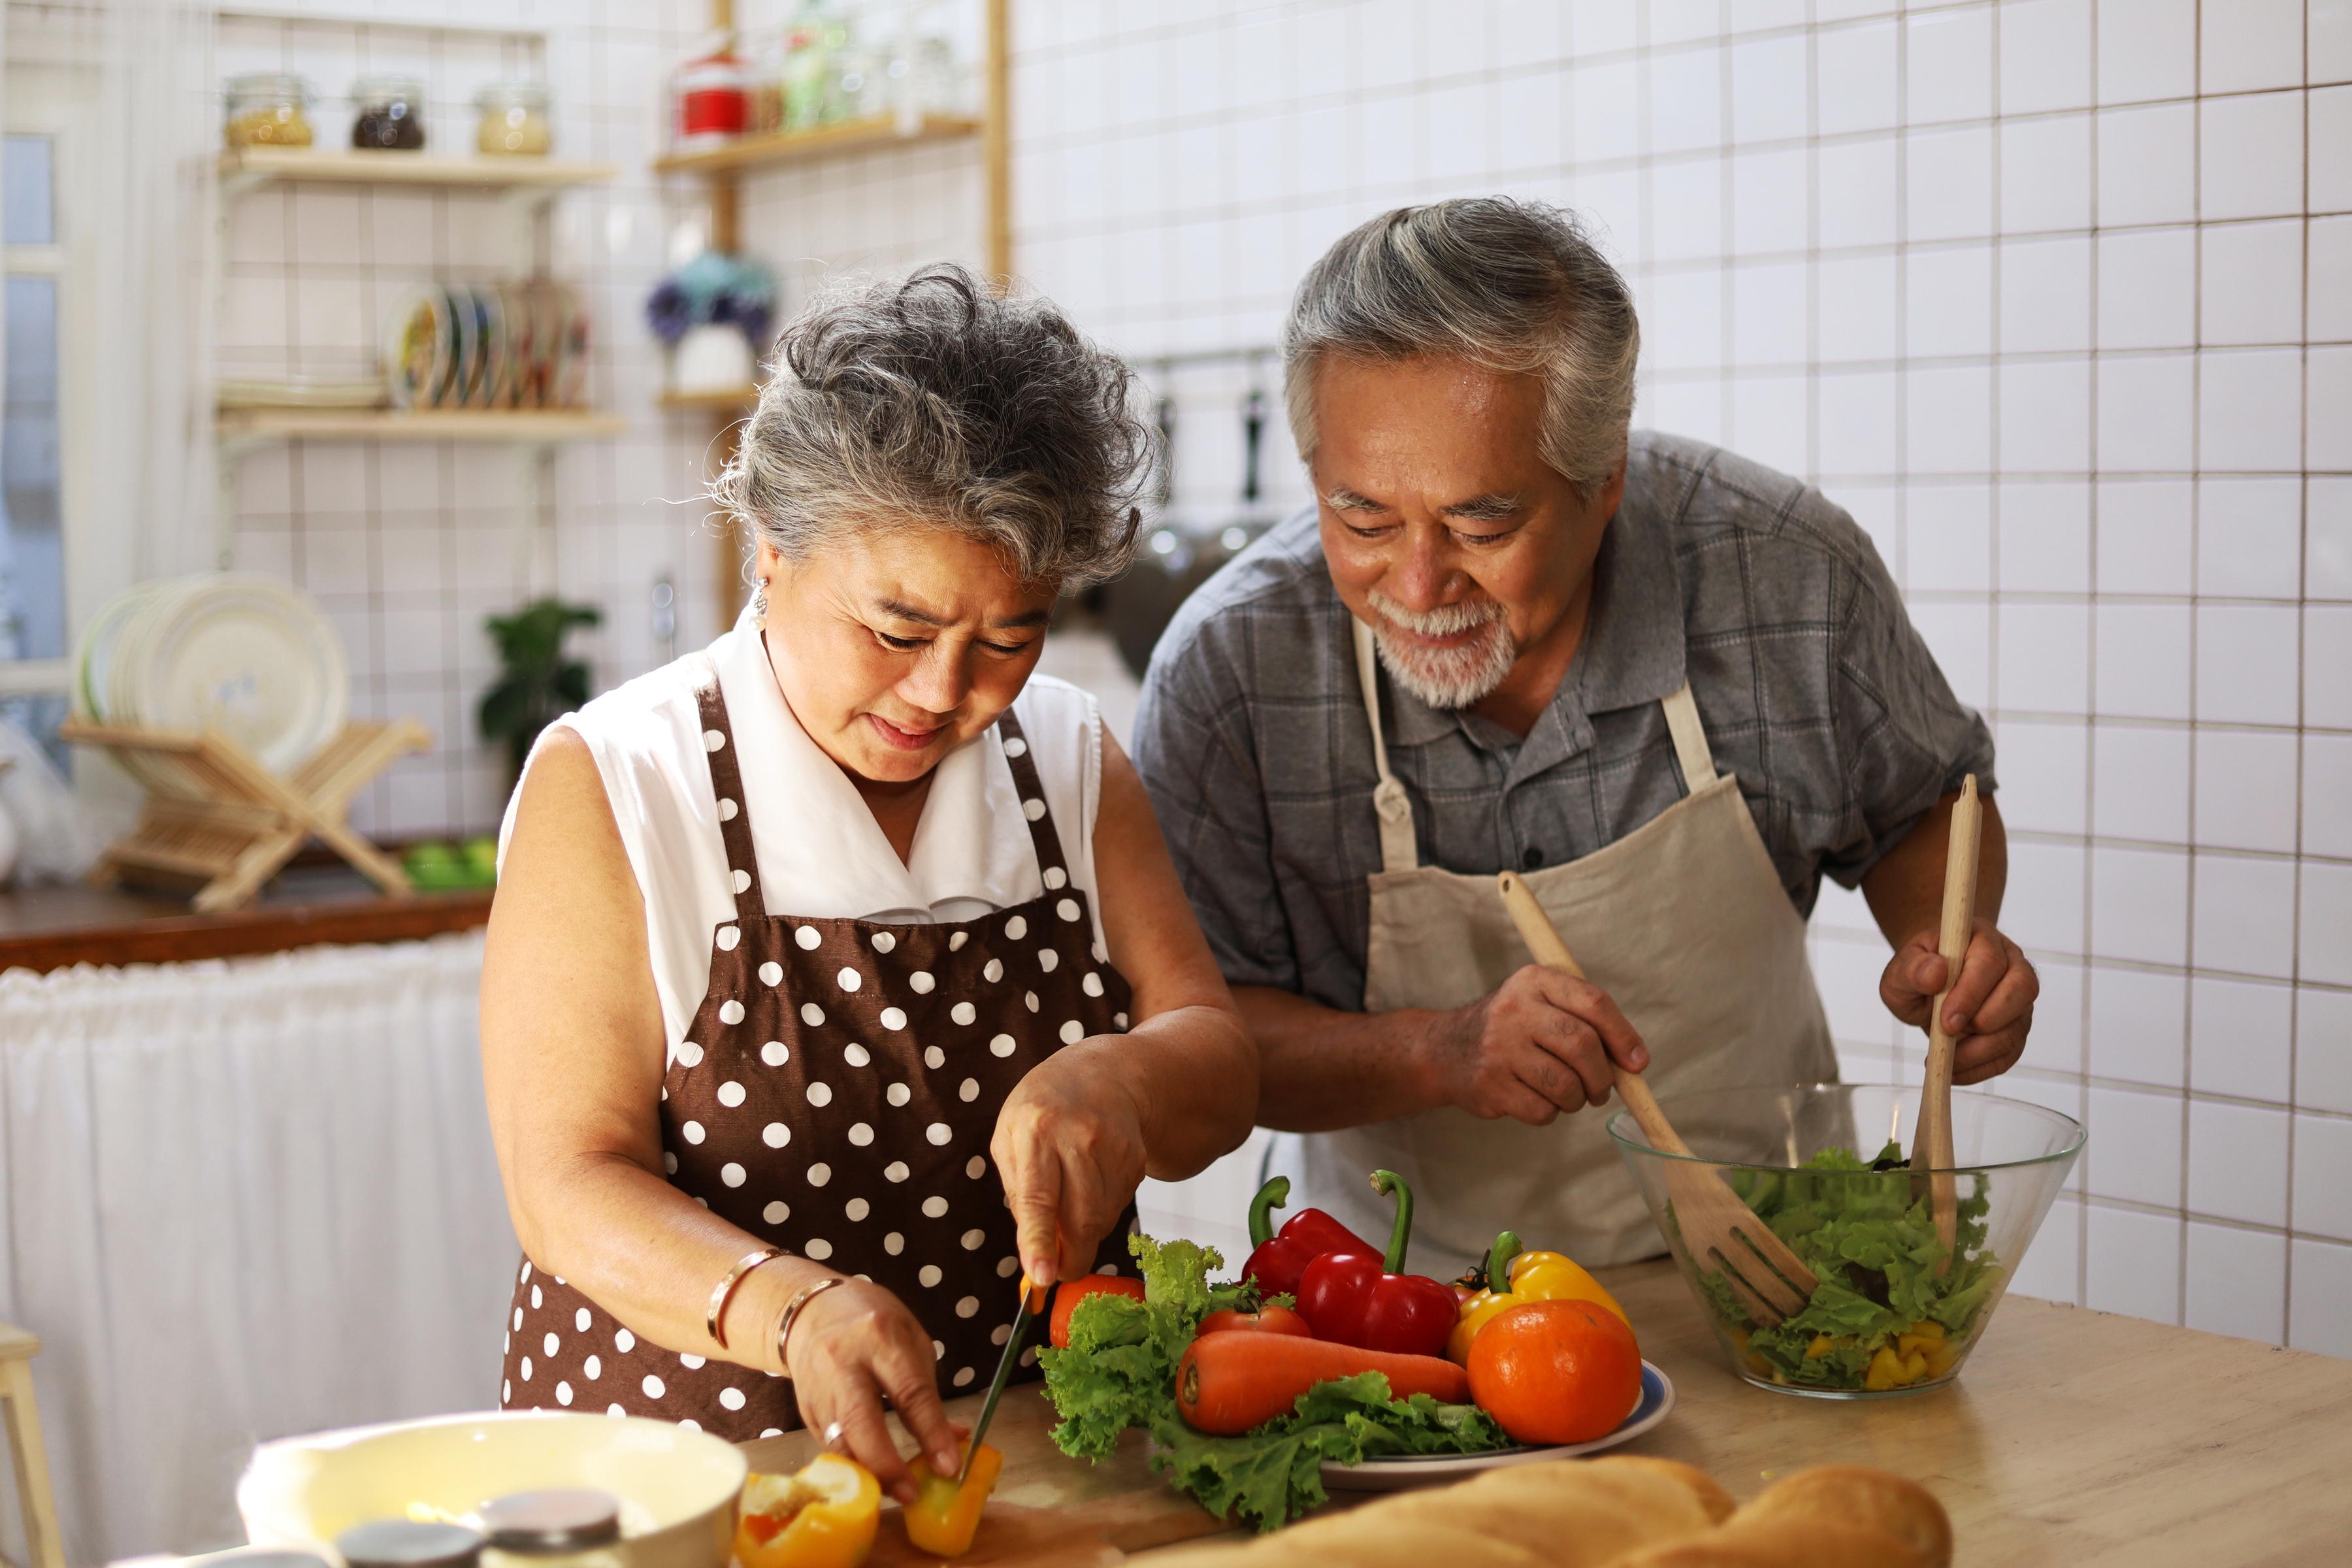 AAPI Couple Cooking